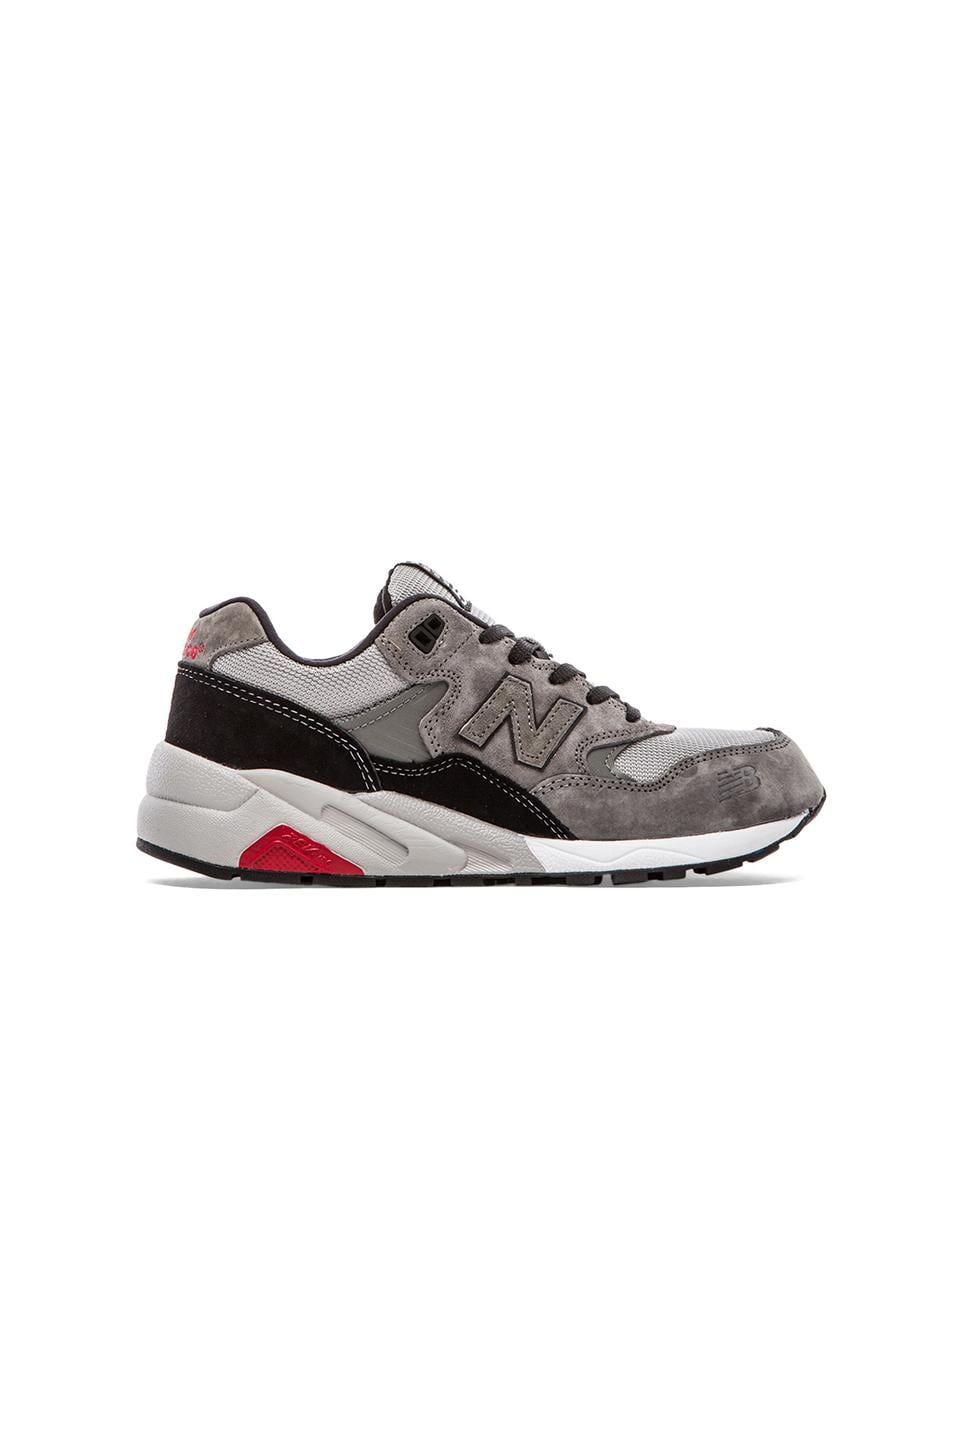 New Balance Elite Edition MRT580 in Grey/Black